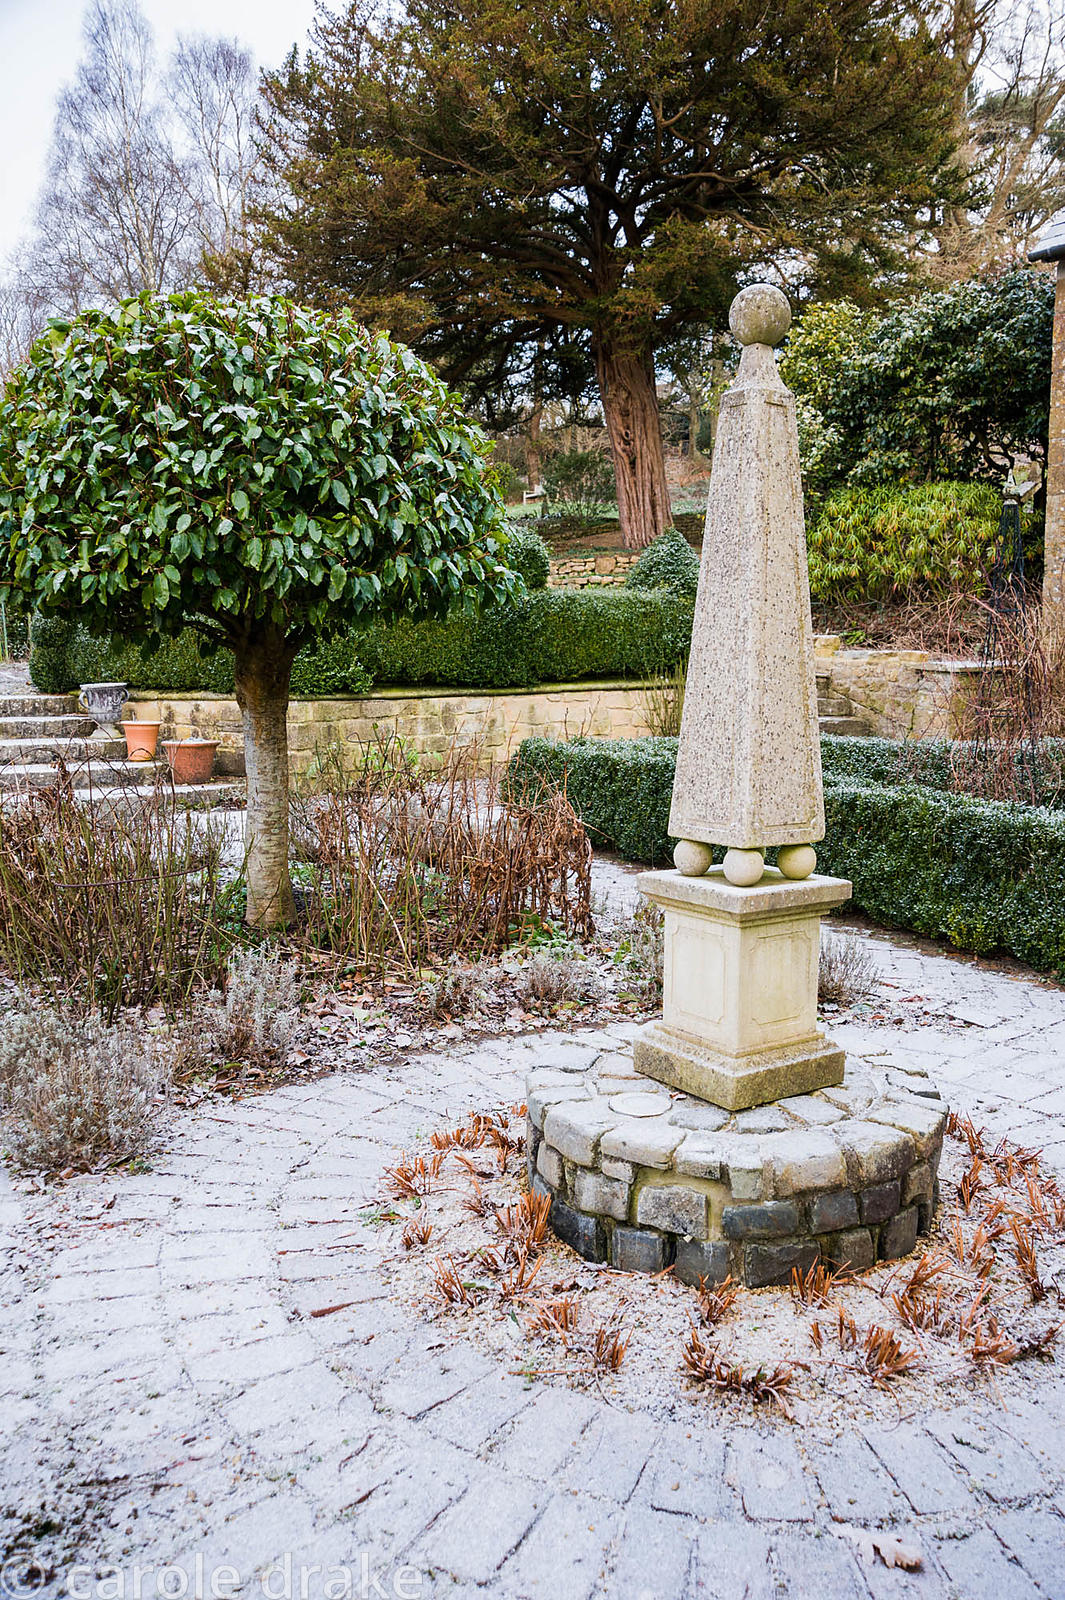 A stone obelisk marks the centre of the courtyard garden surrounded by clipped standard bays and box edged beds.